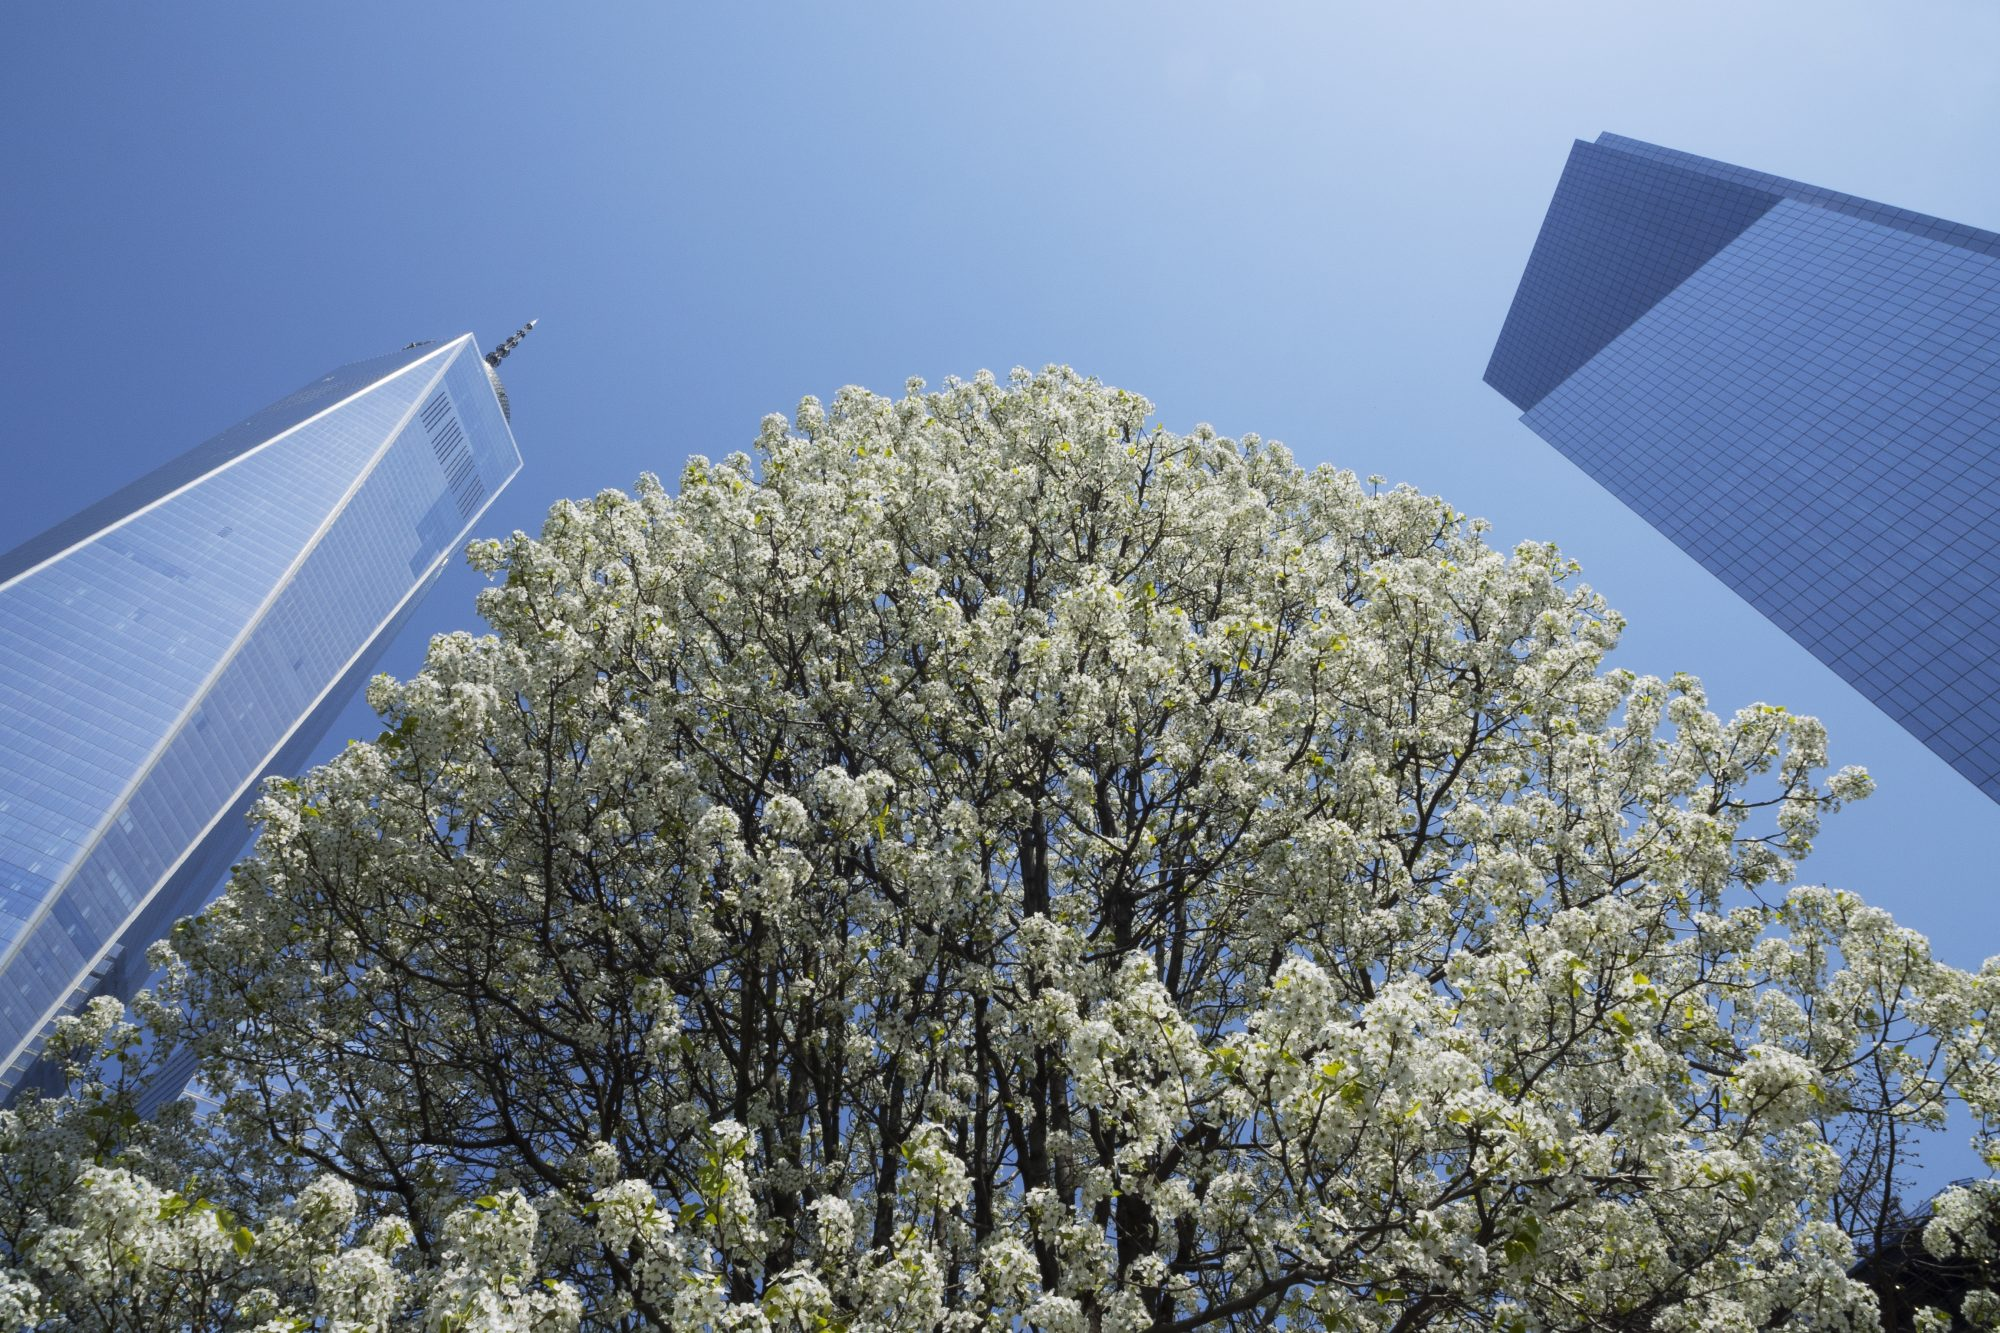 the Survivor Tree blossoms in full bloom in New York City